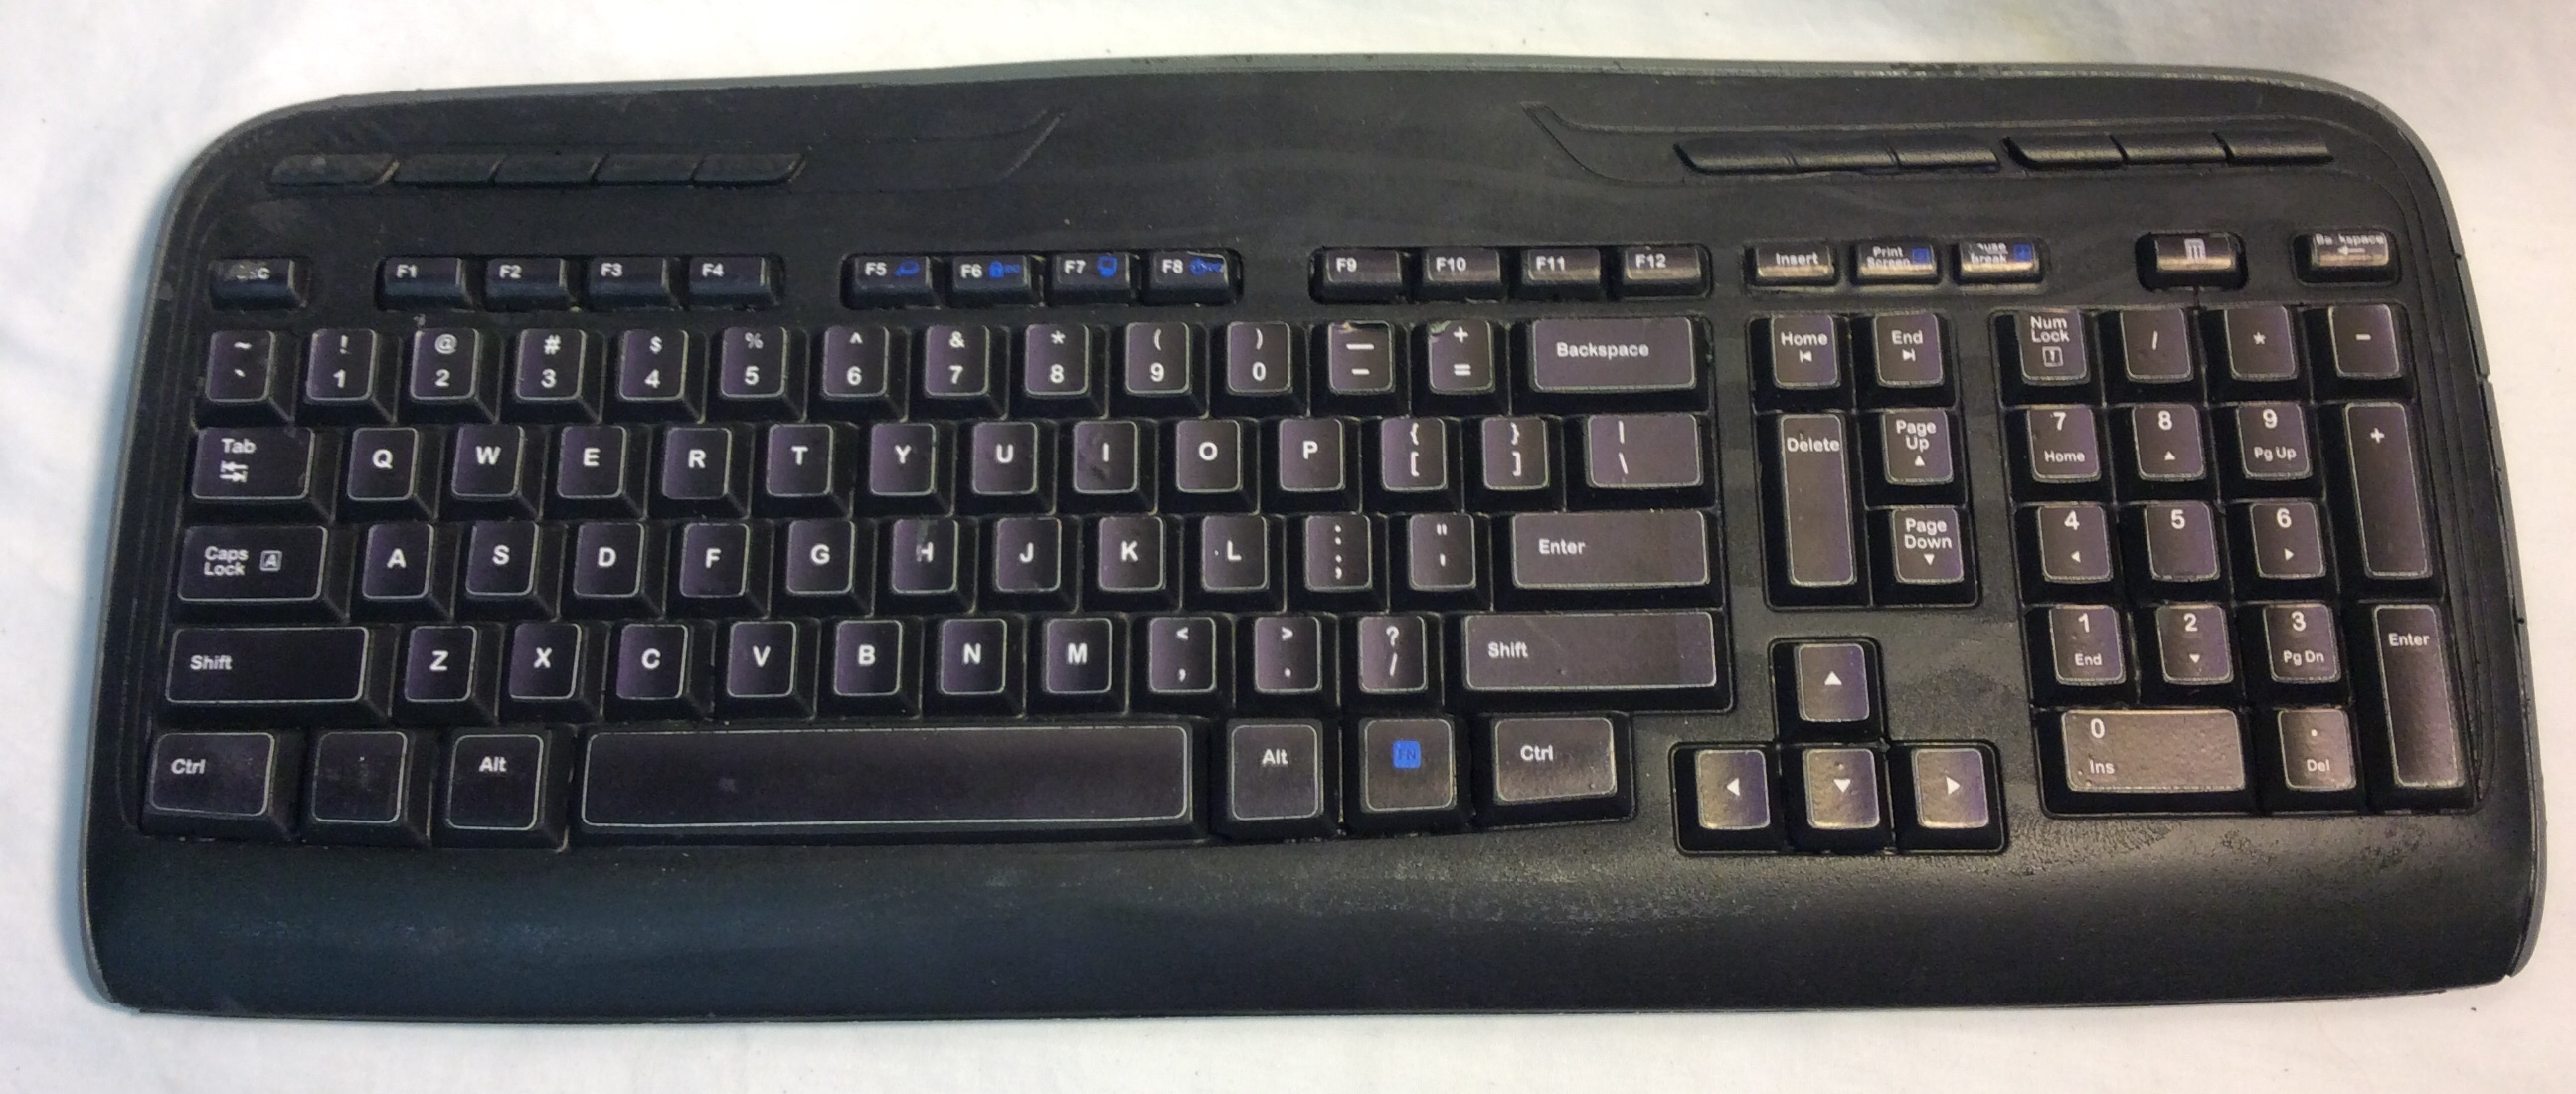 Black computer keyboard - 5 real and 2 rubber